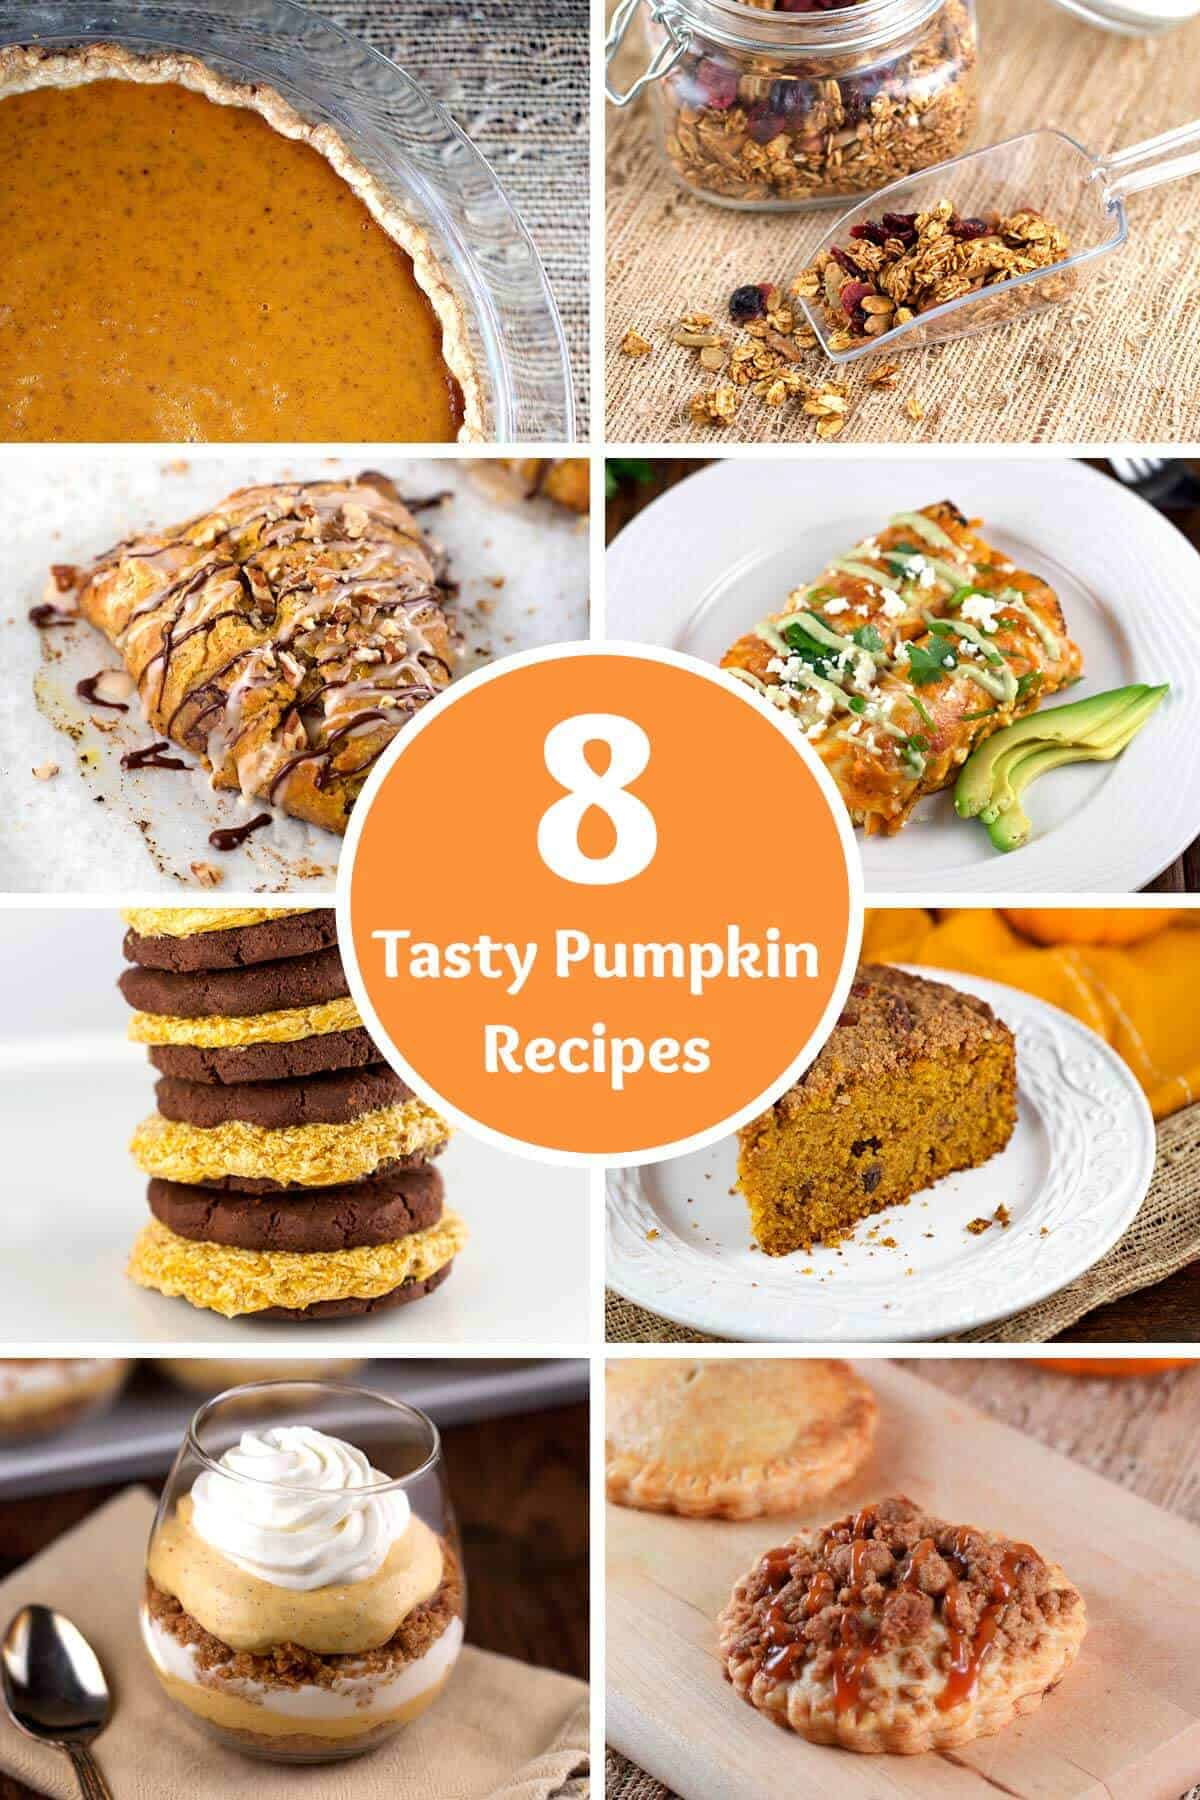 8 of my favorite tasty pumpkin recipes for you to try and home this season | jessicagavin.com